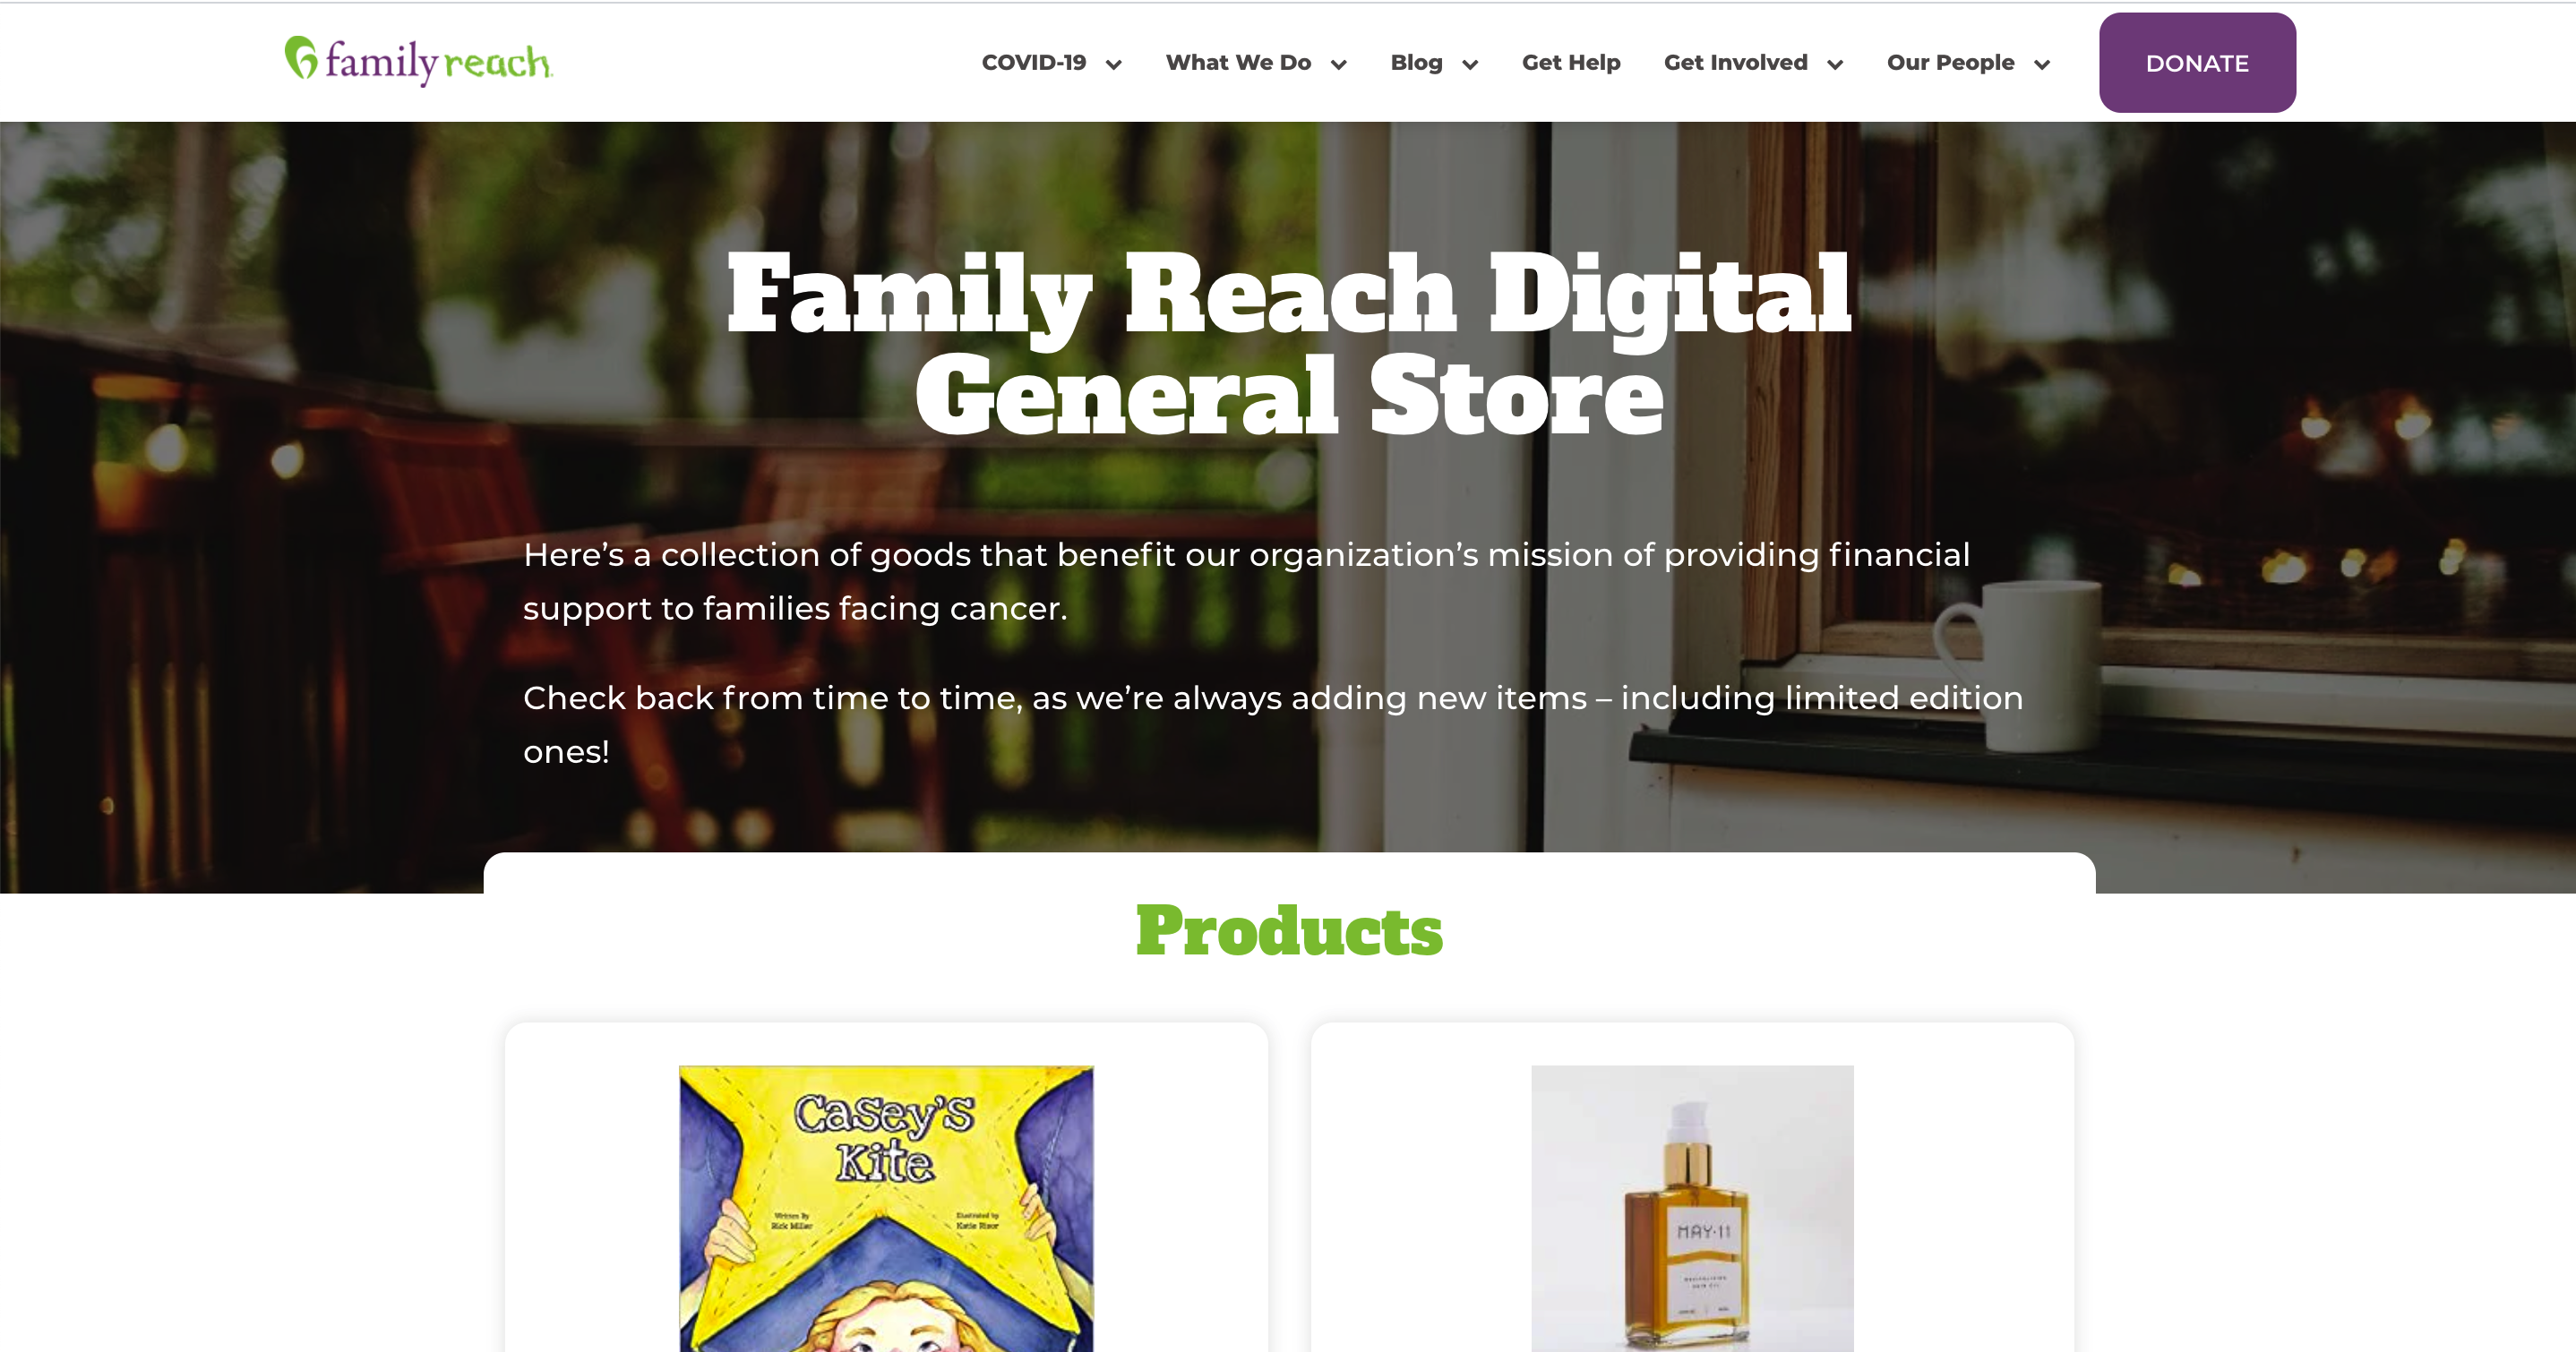 Family Reach's online General Store web page